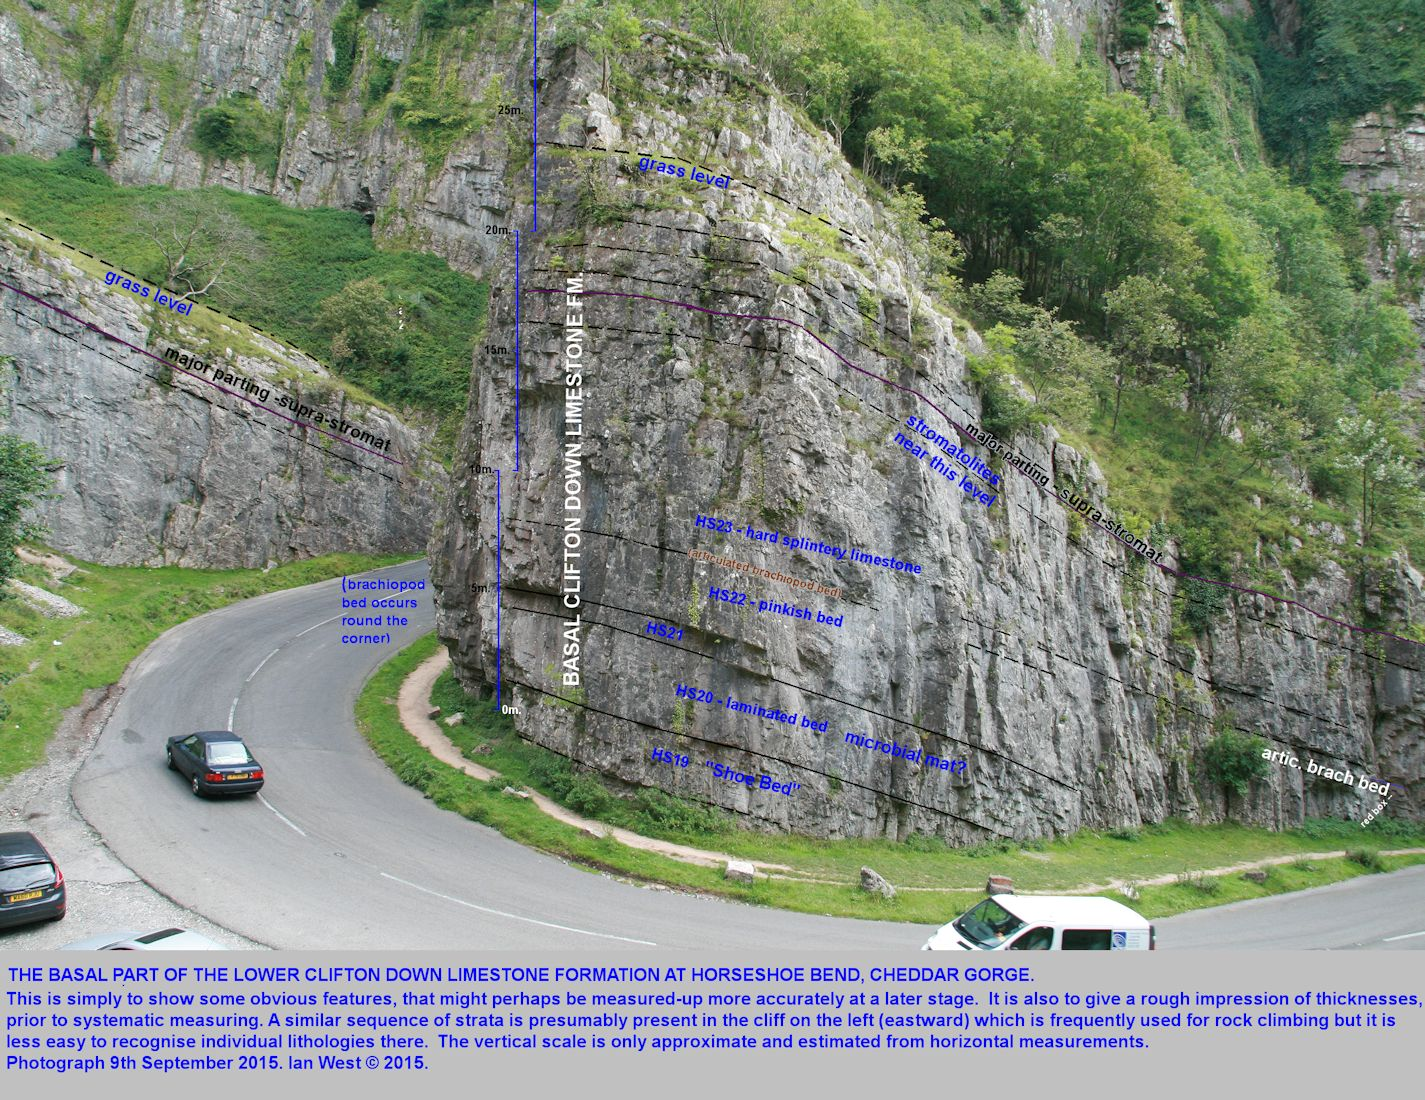 The basal Clifton Down Limestone Formation sequence, with approximate vertical scale, at Horseshoe Bend, Cheddar Gorge, Mendip Hills, Somerset